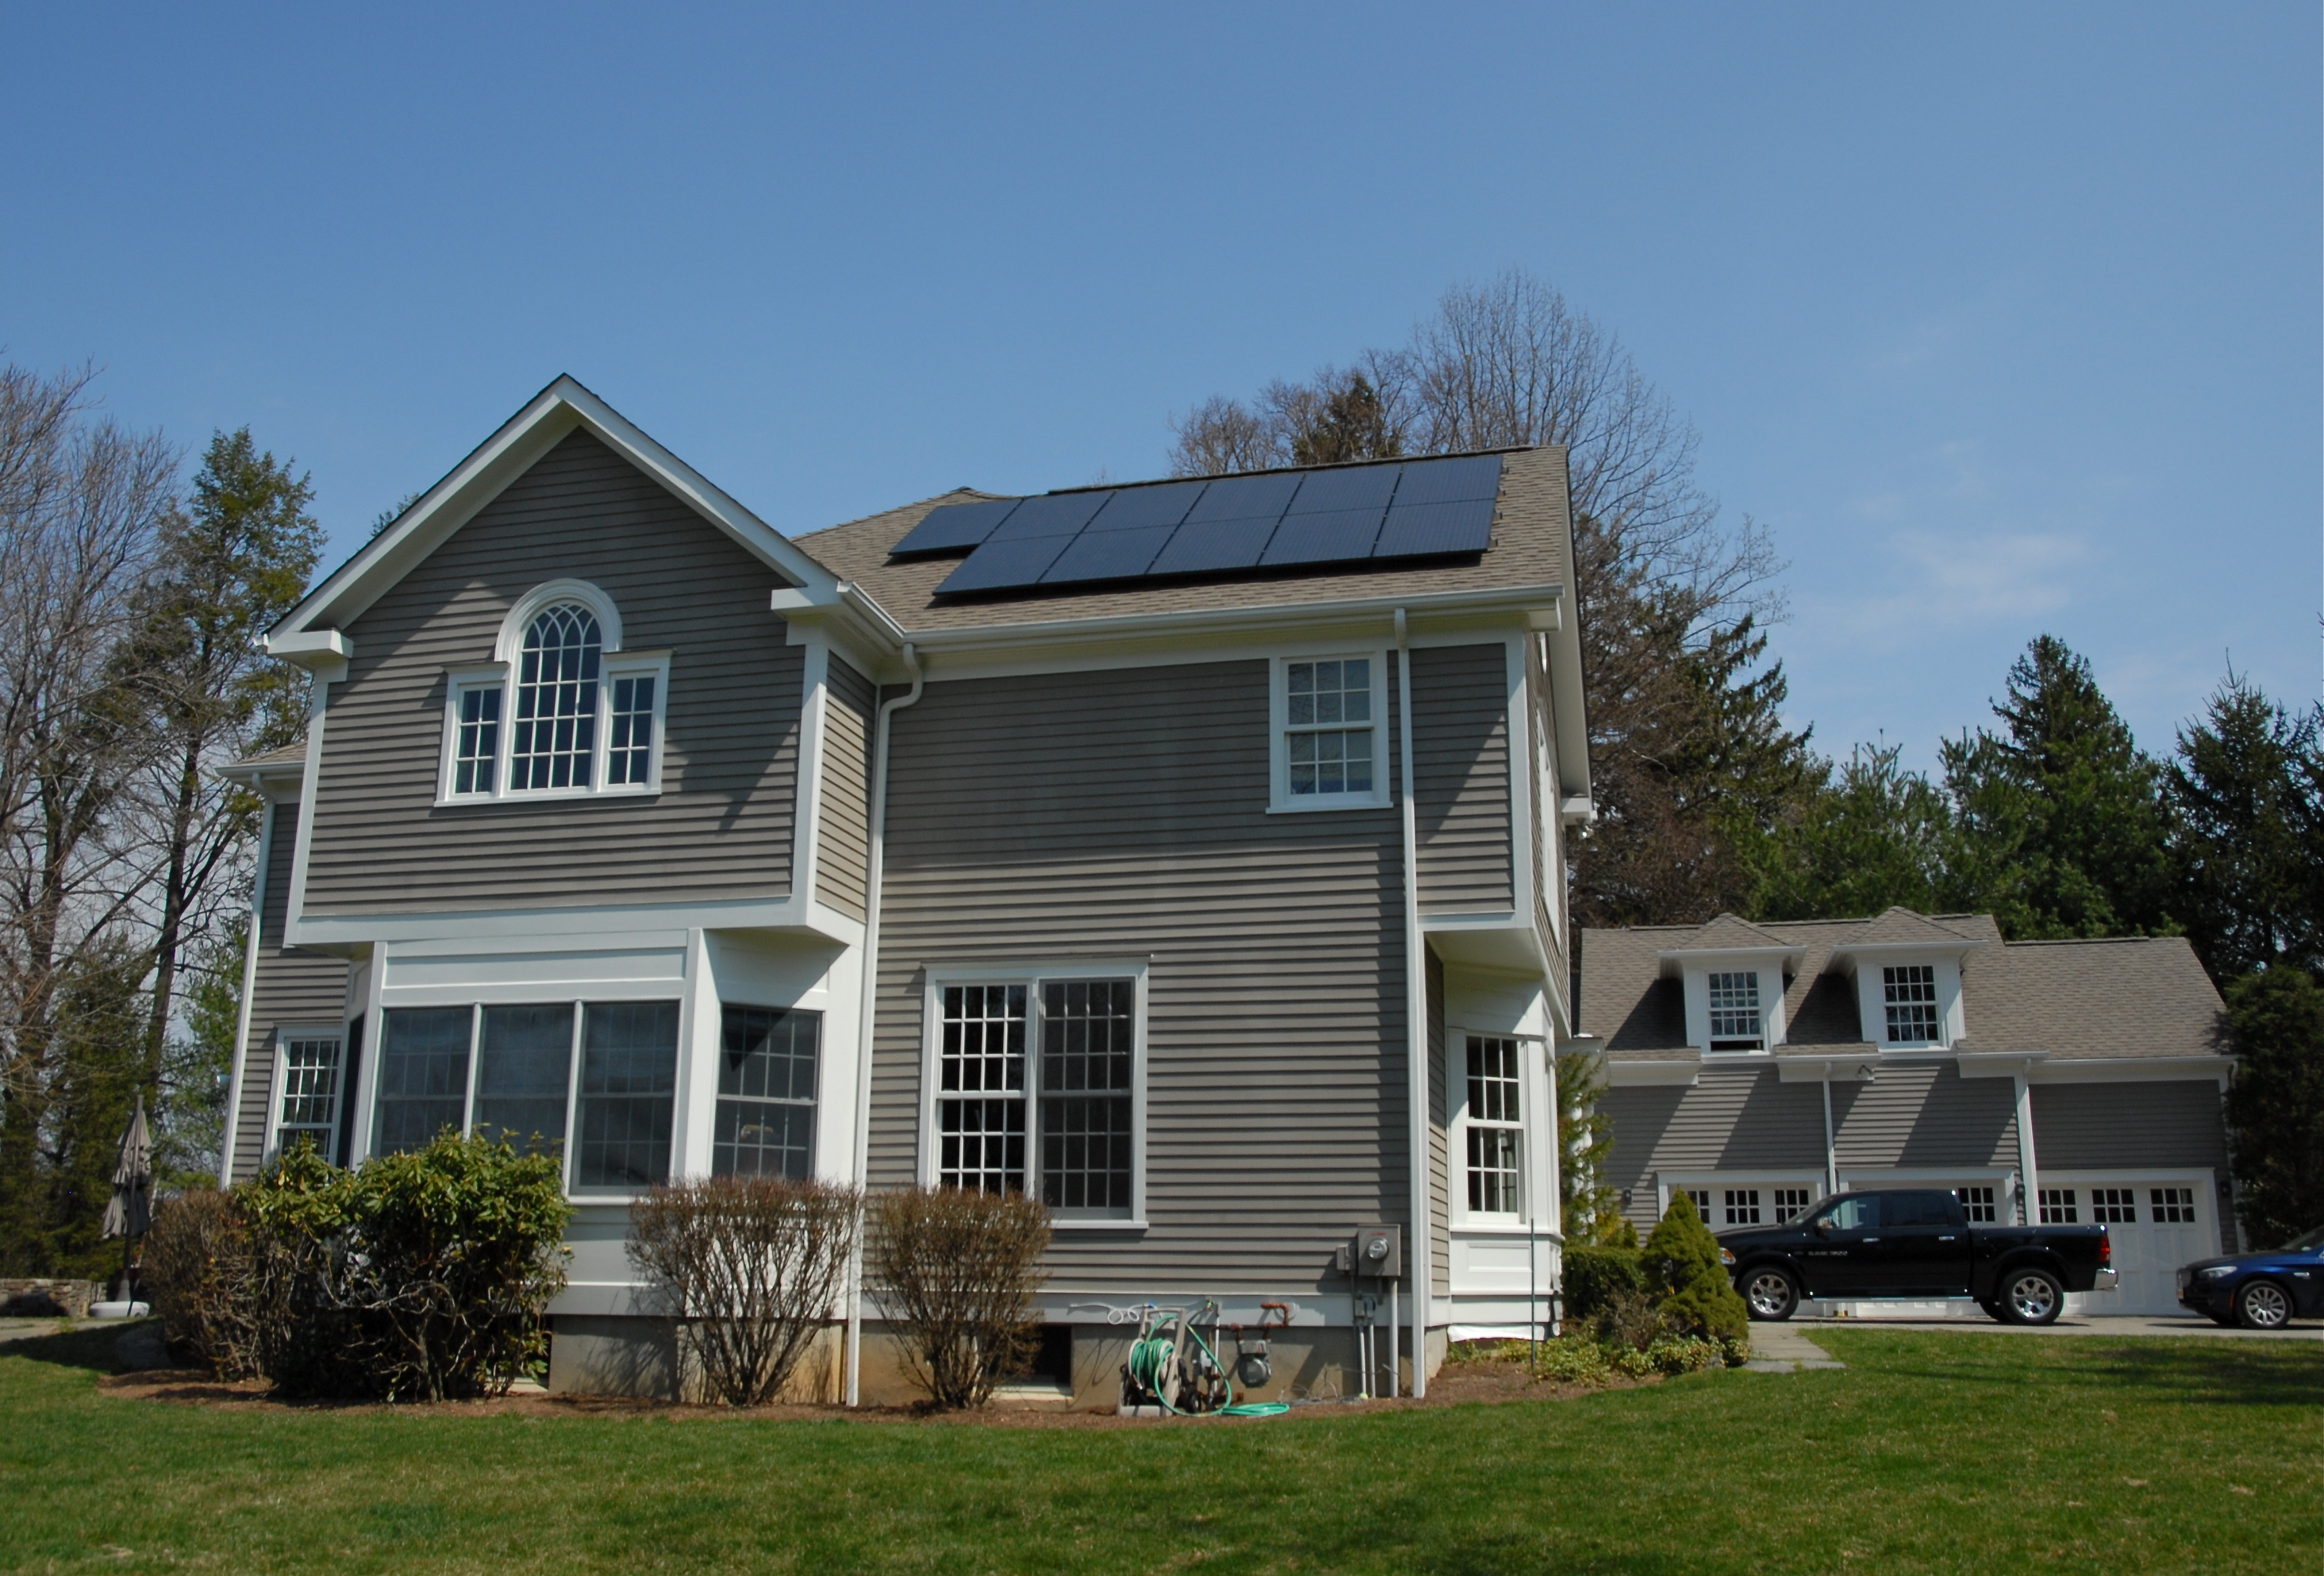 Buying a Home With Solar Panels? What You Need to Know